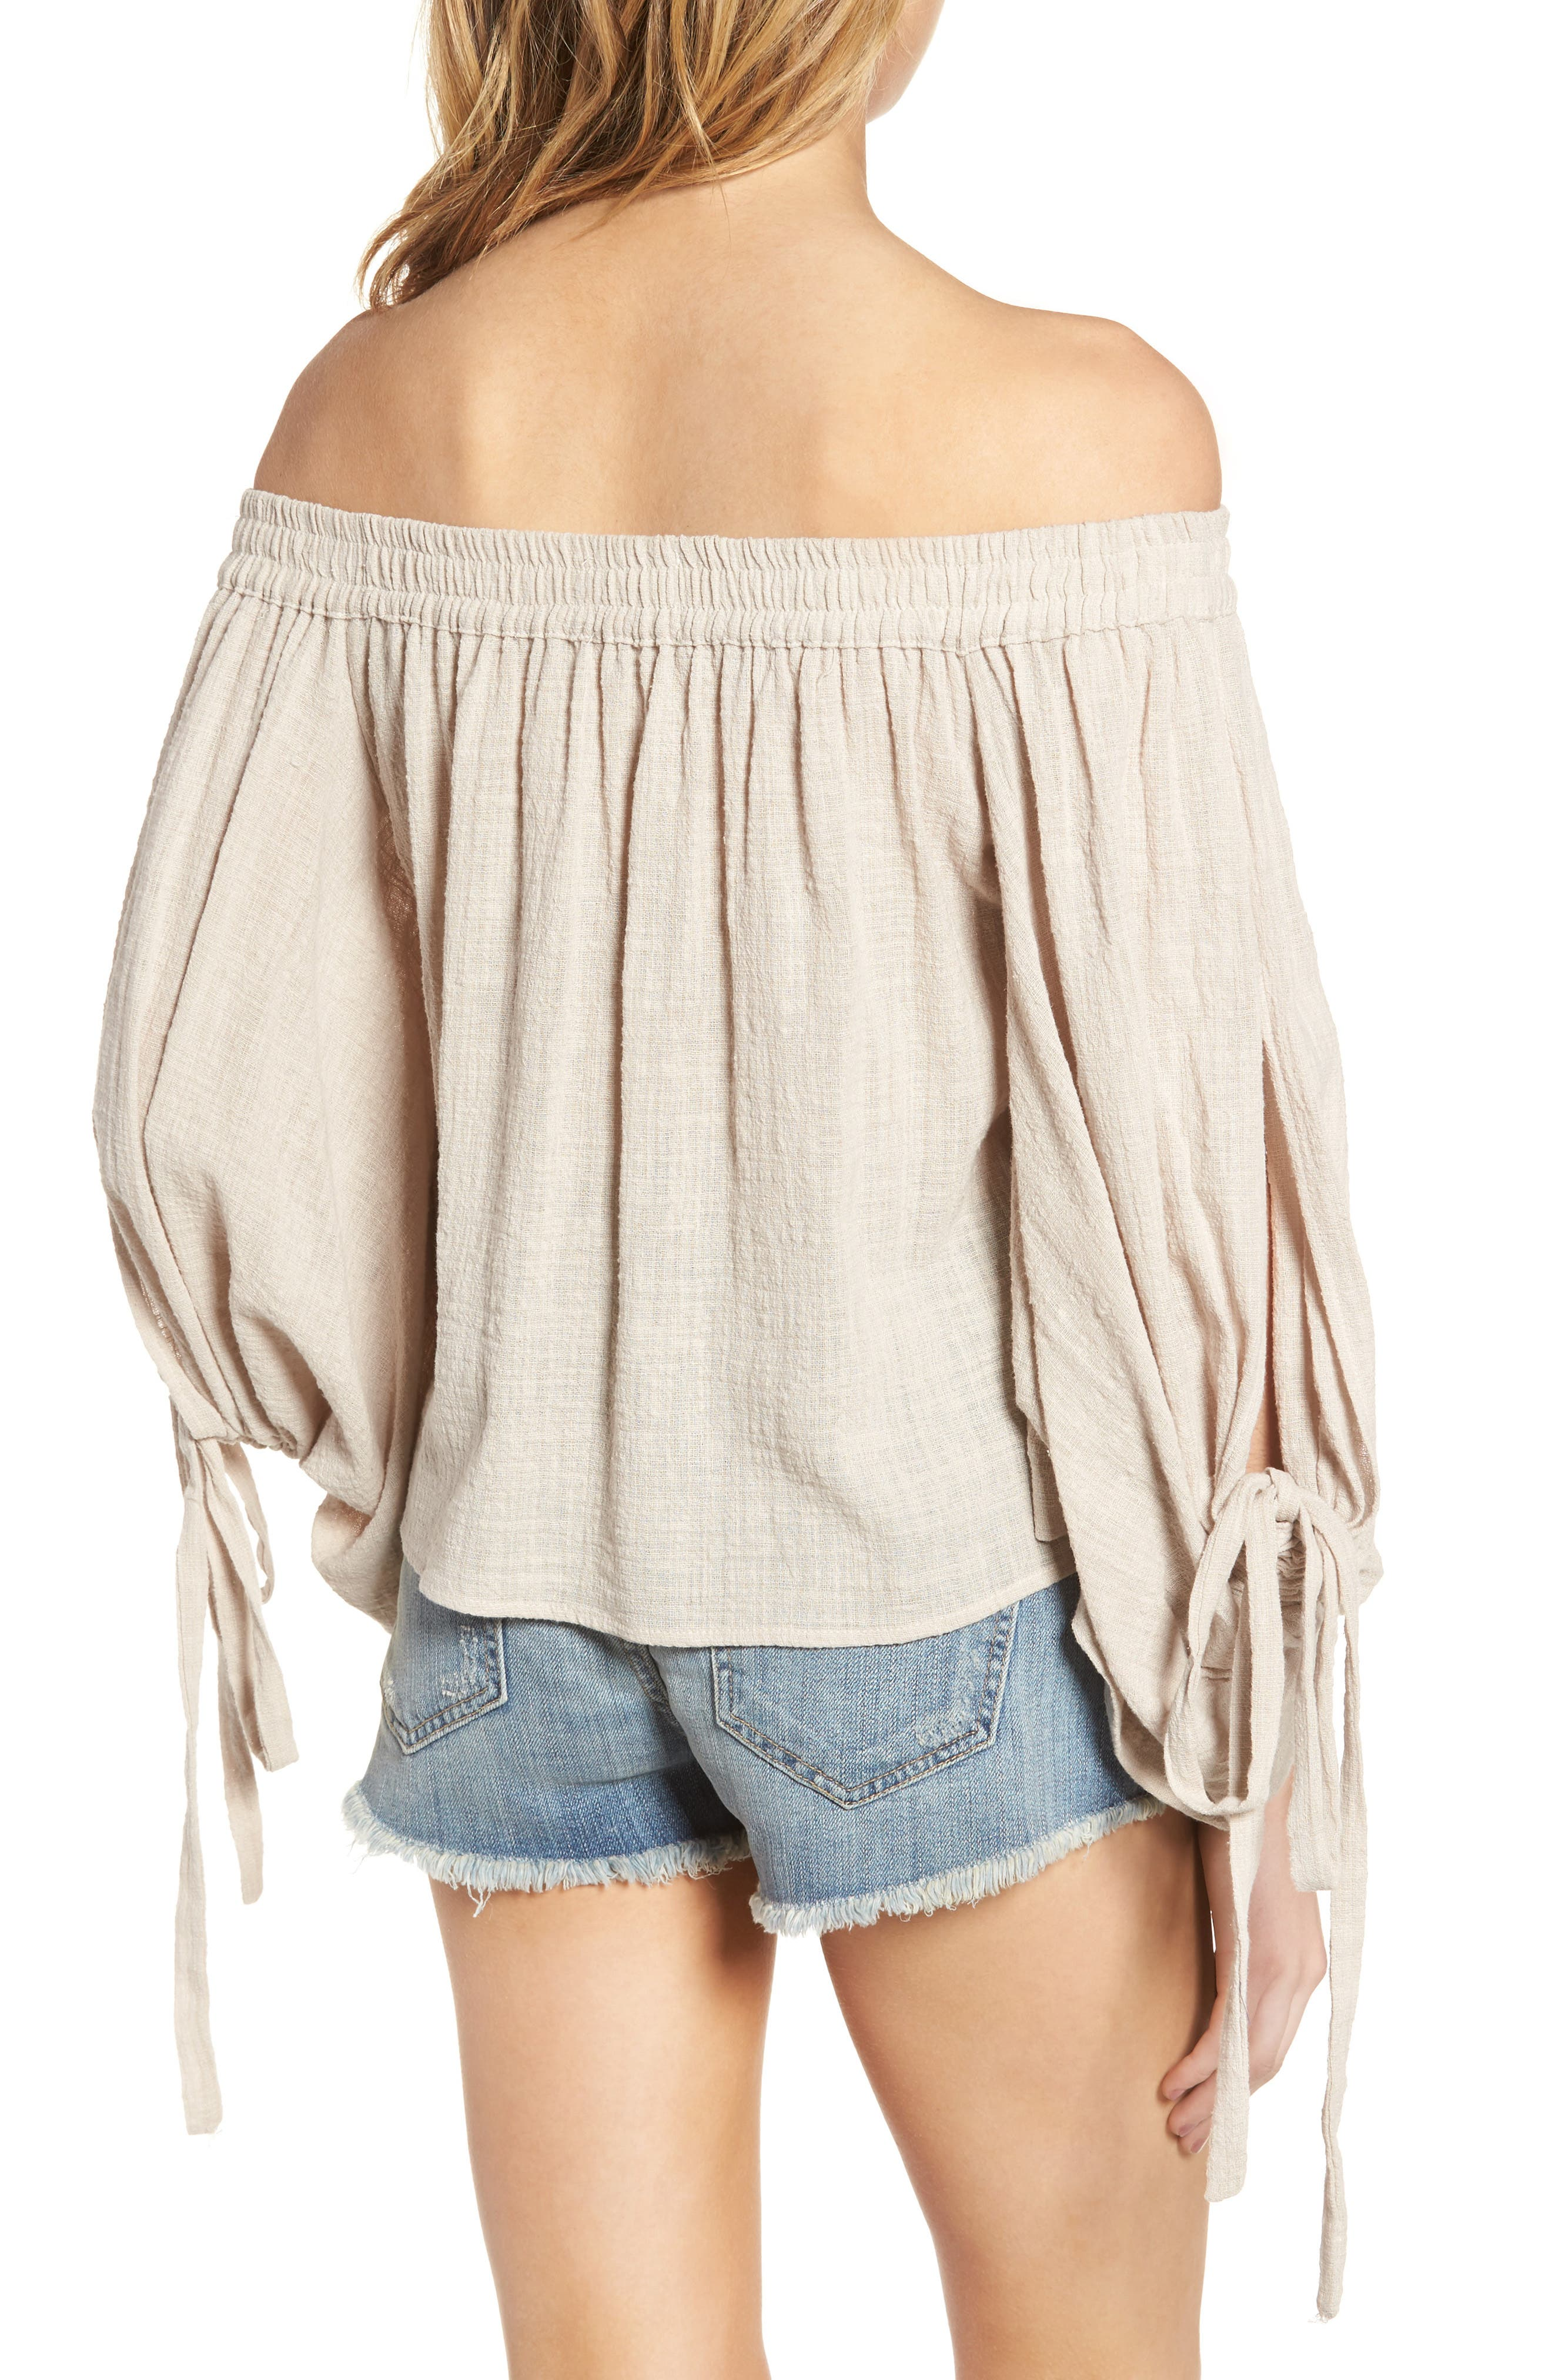 Adeli Off the Shoulder Top,                             Alternate thumbnail 3, color,                             Oatmeal